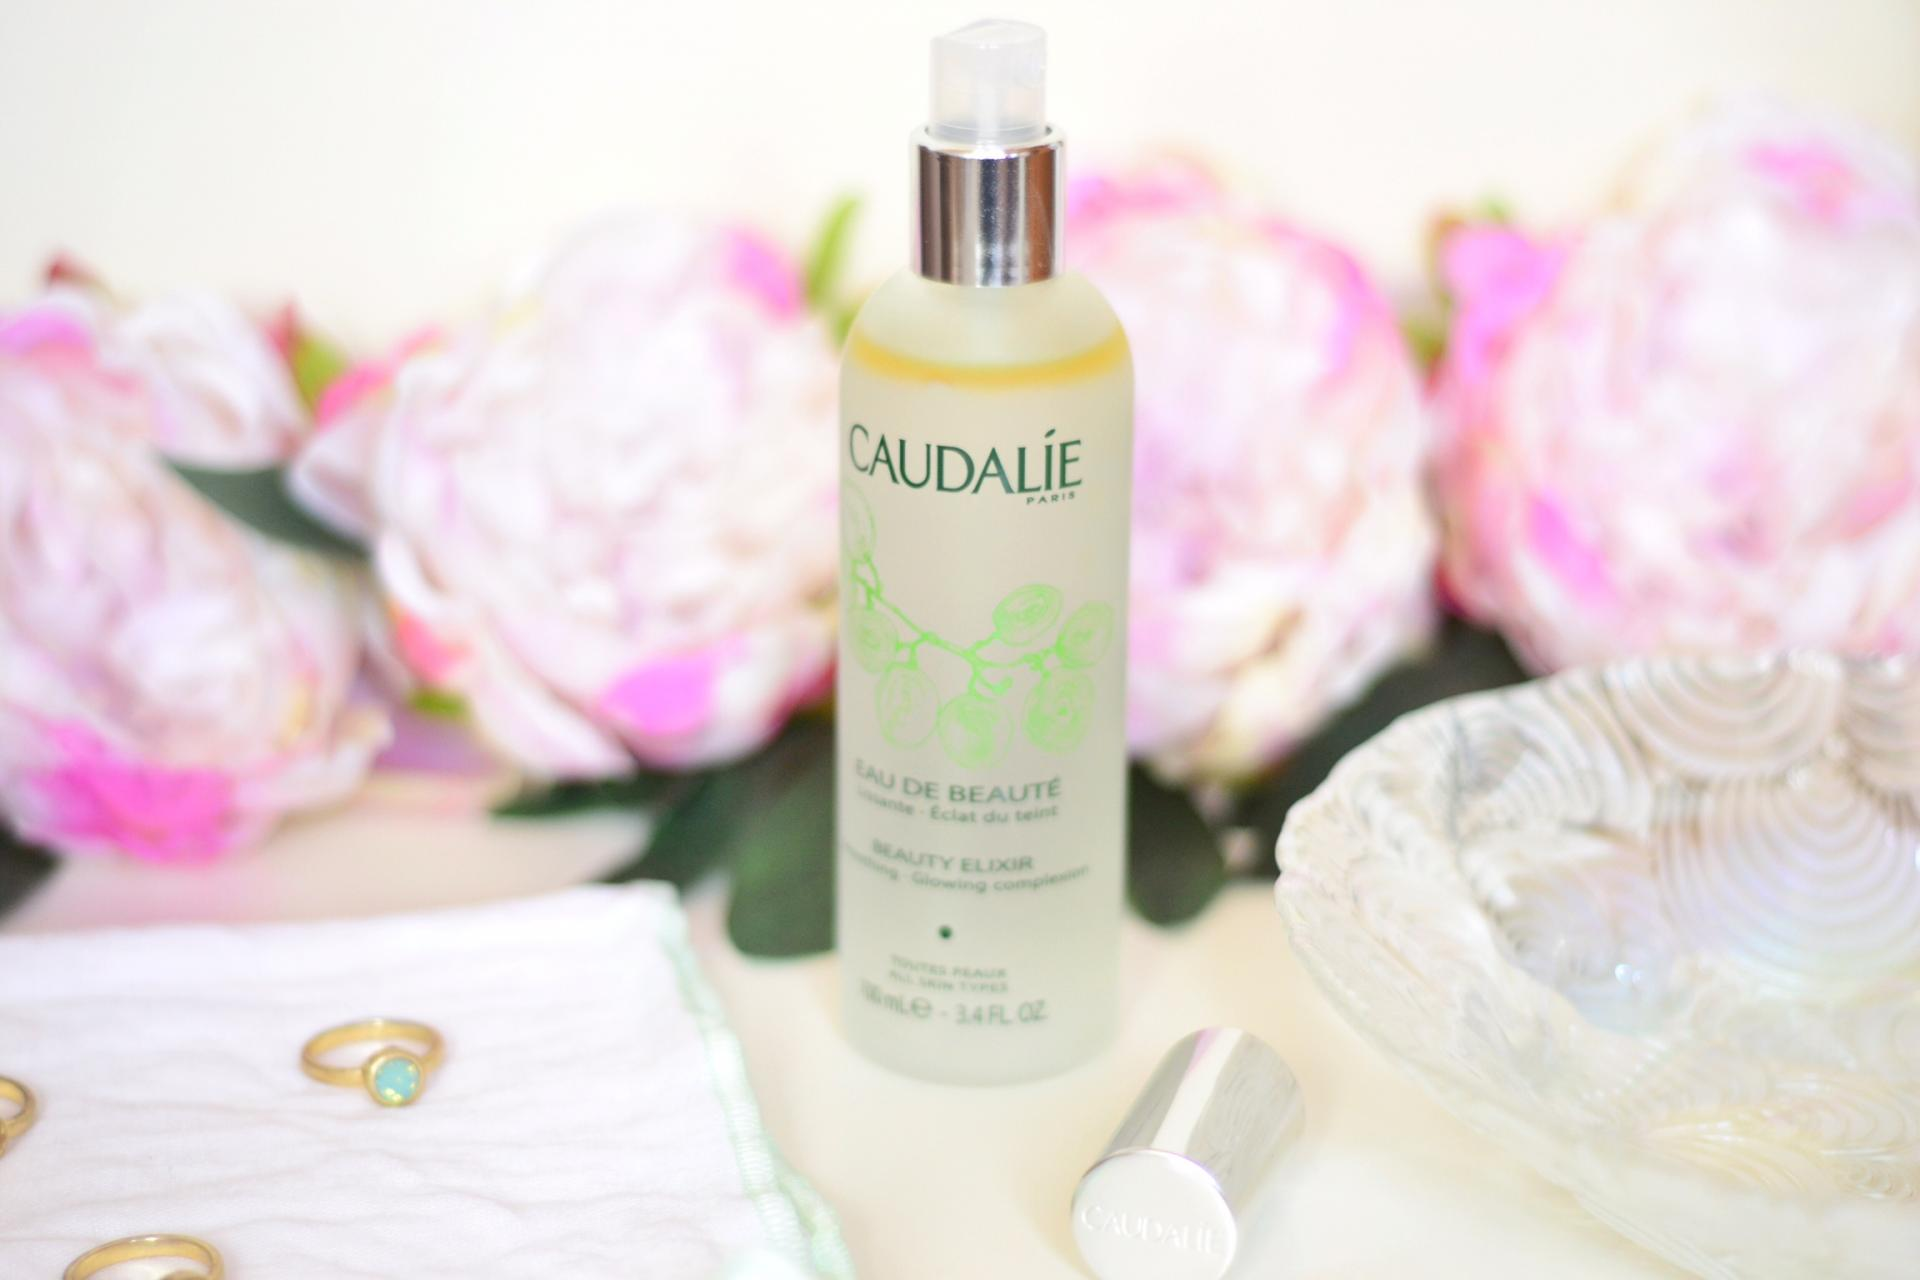 caudalie-beauty-elixir